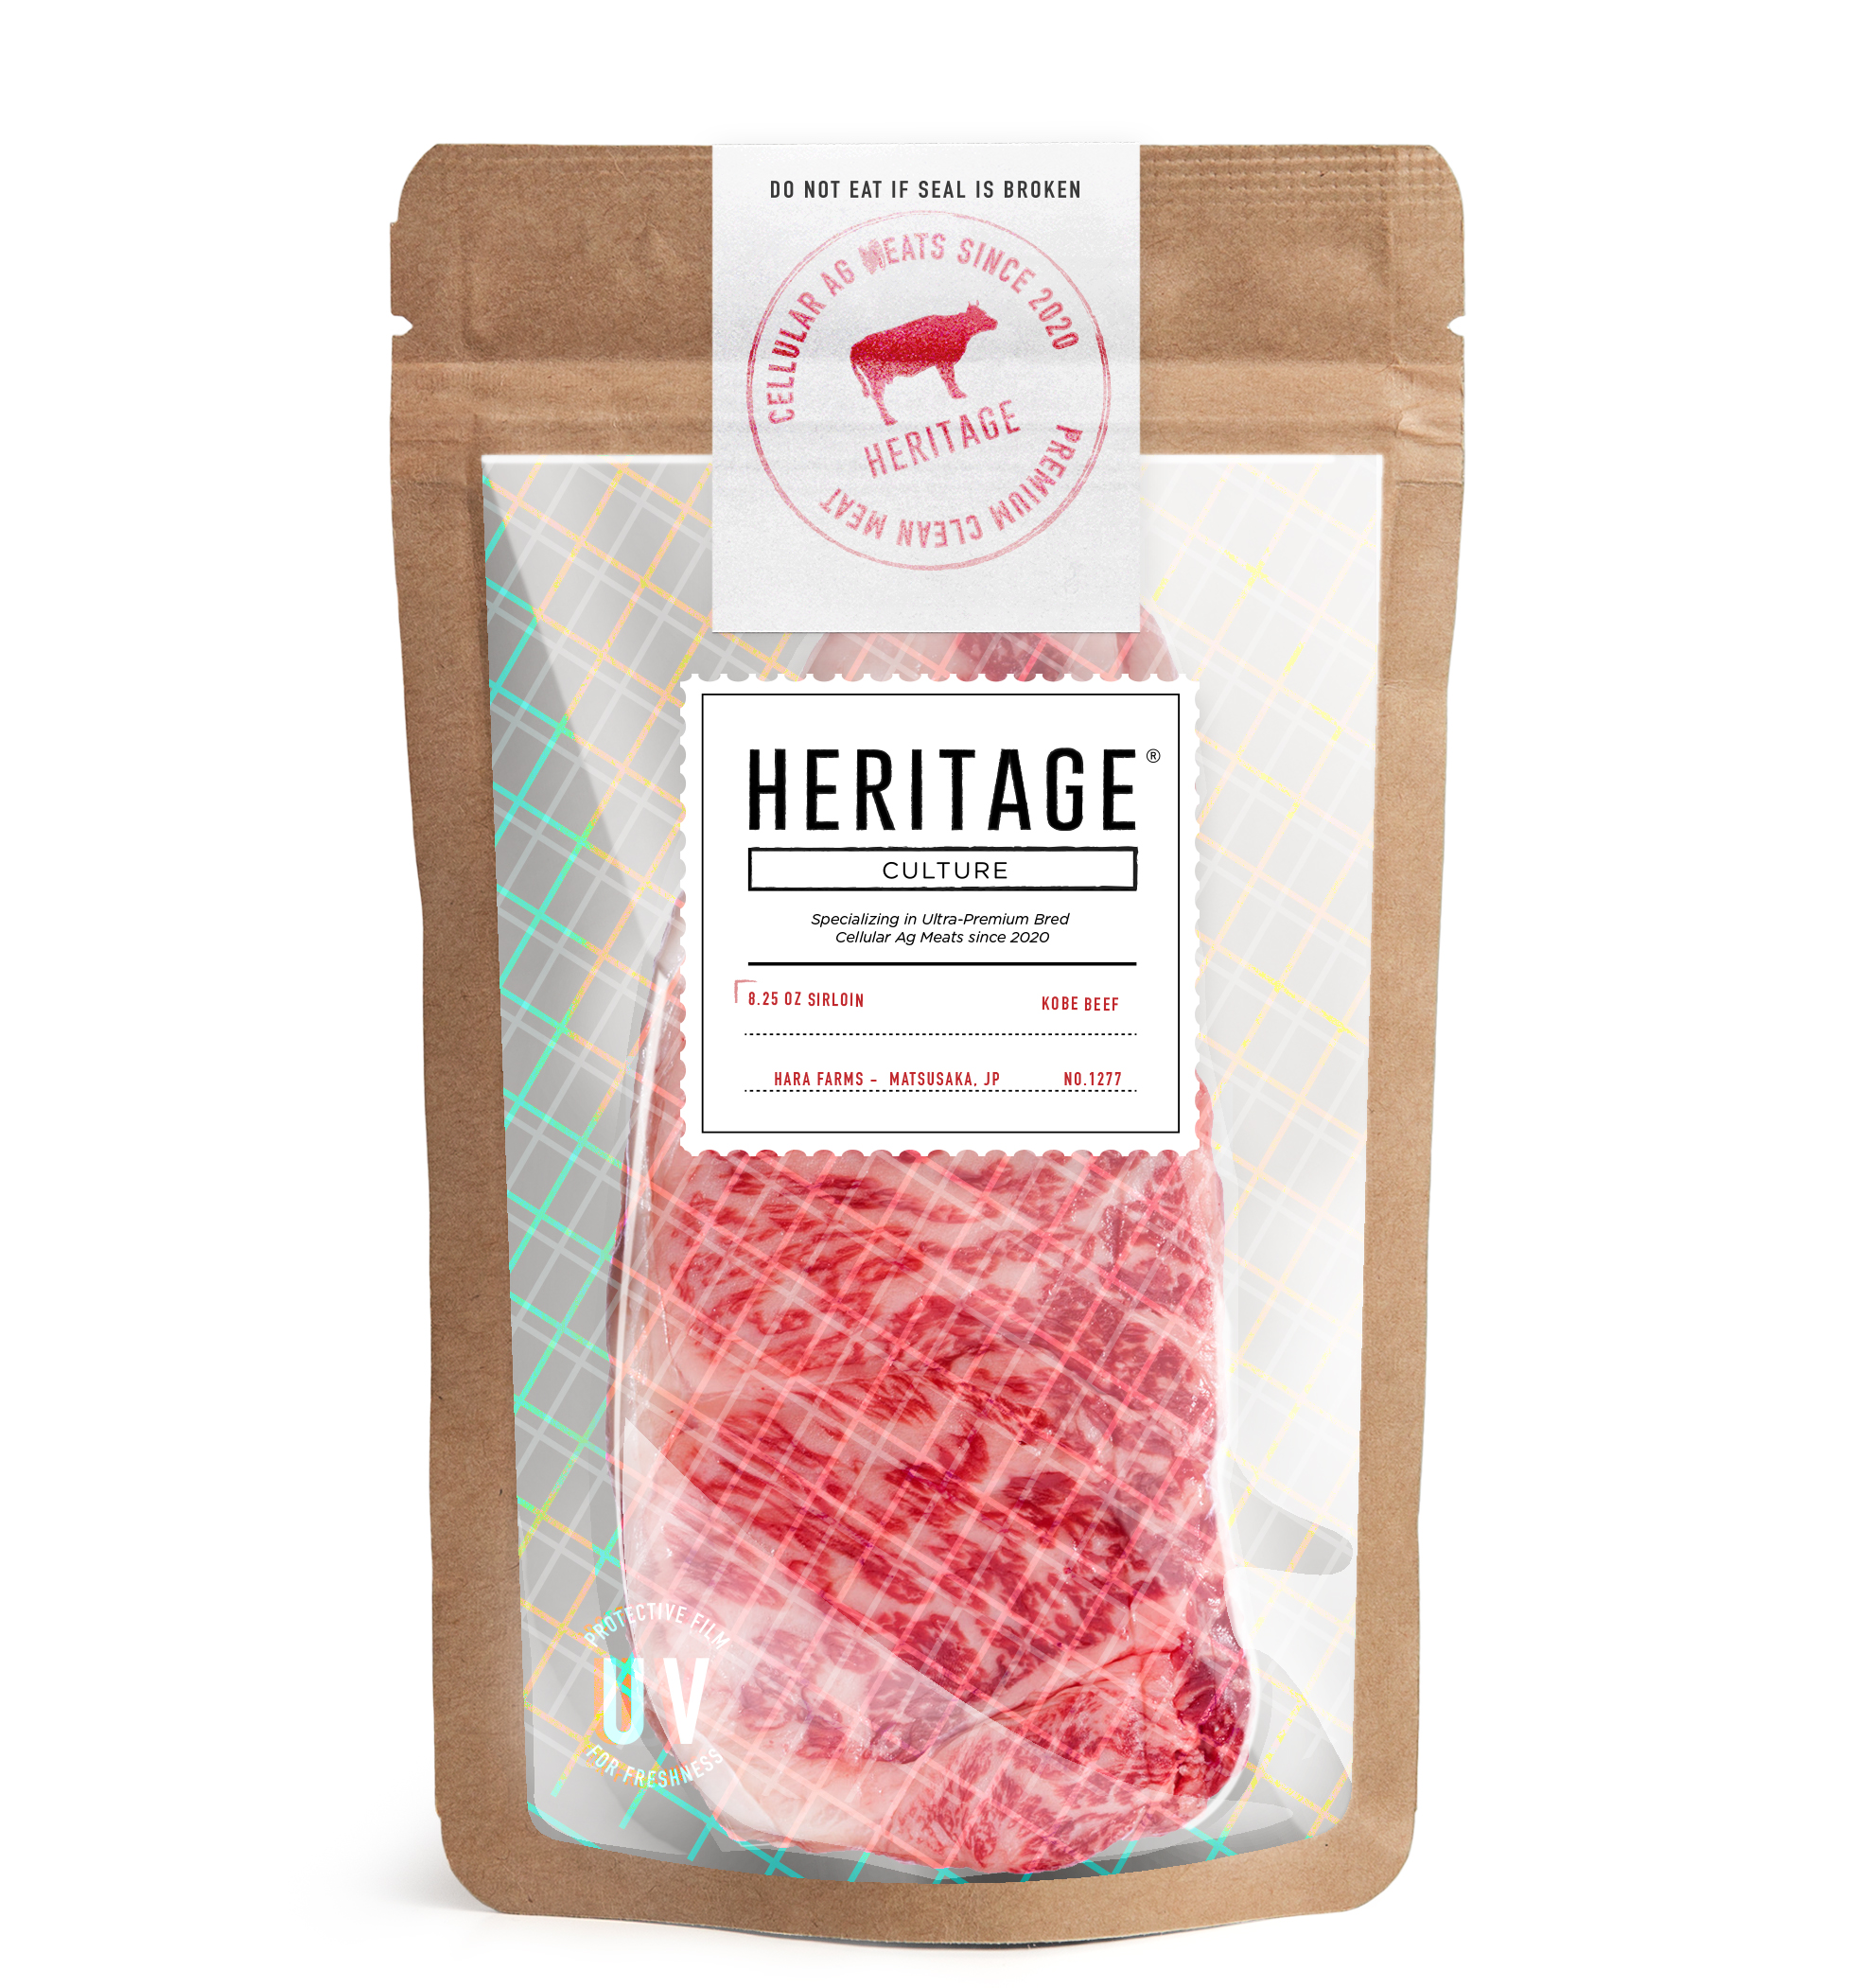 Heritage Culture    Heritage Culture offers delicious, luxury protein at everyday prices. Compared to raising traditional meat, our advancements in cellular agriculture allow us to produce premium cuts of Kobe and Wagyu Beef, Slate Turkey, and the like using minimal resources and energy.